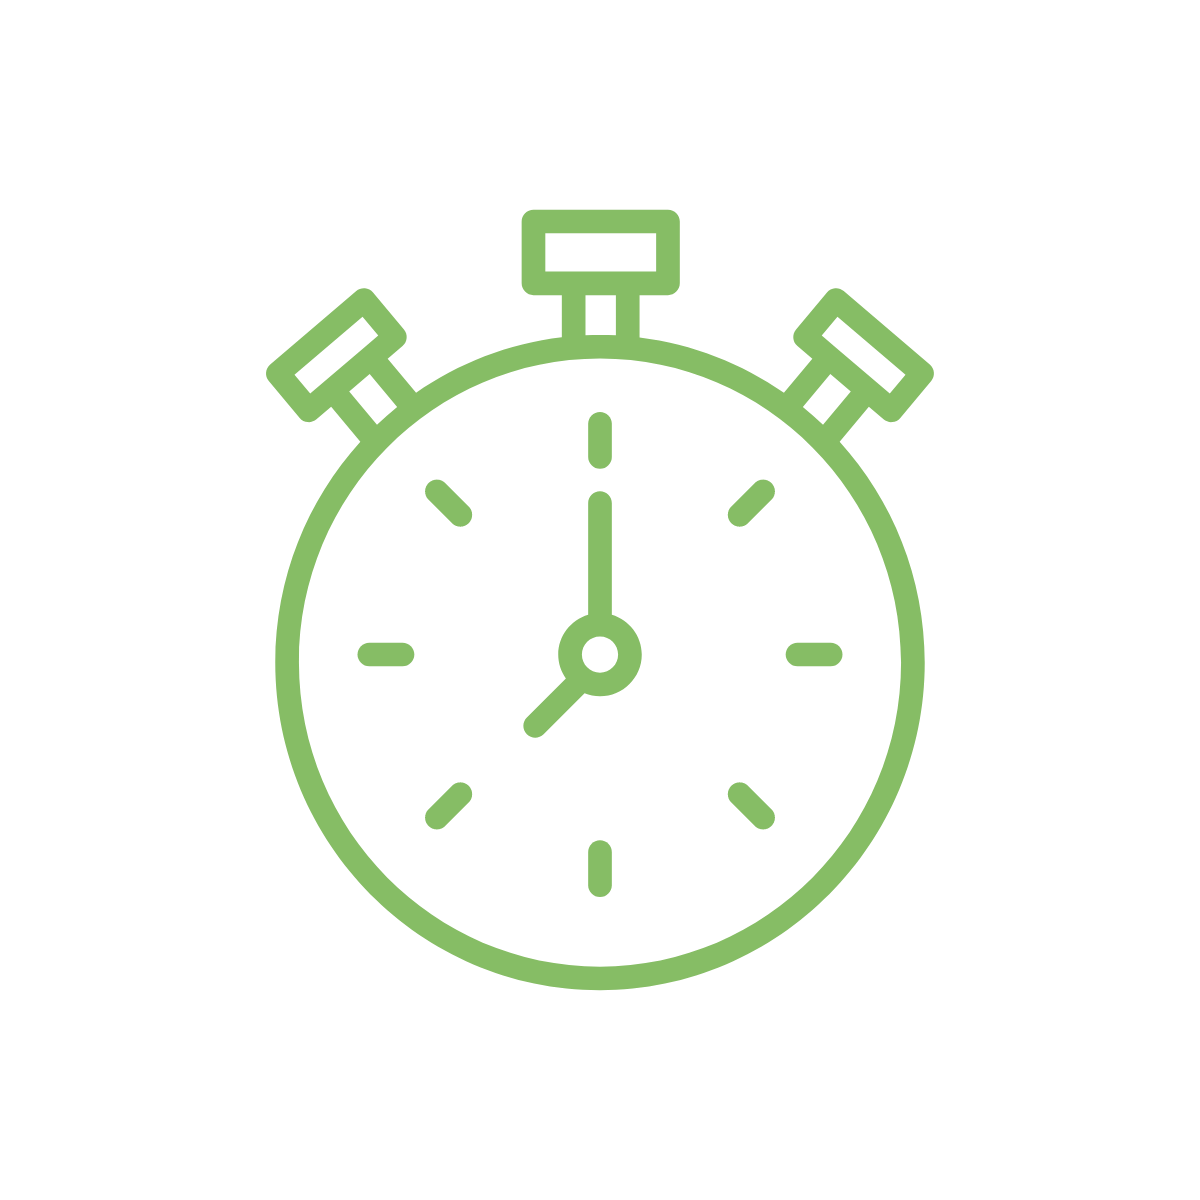 We provide cover when staff are away to ensure you never miss deadlines or compliance requirements. -